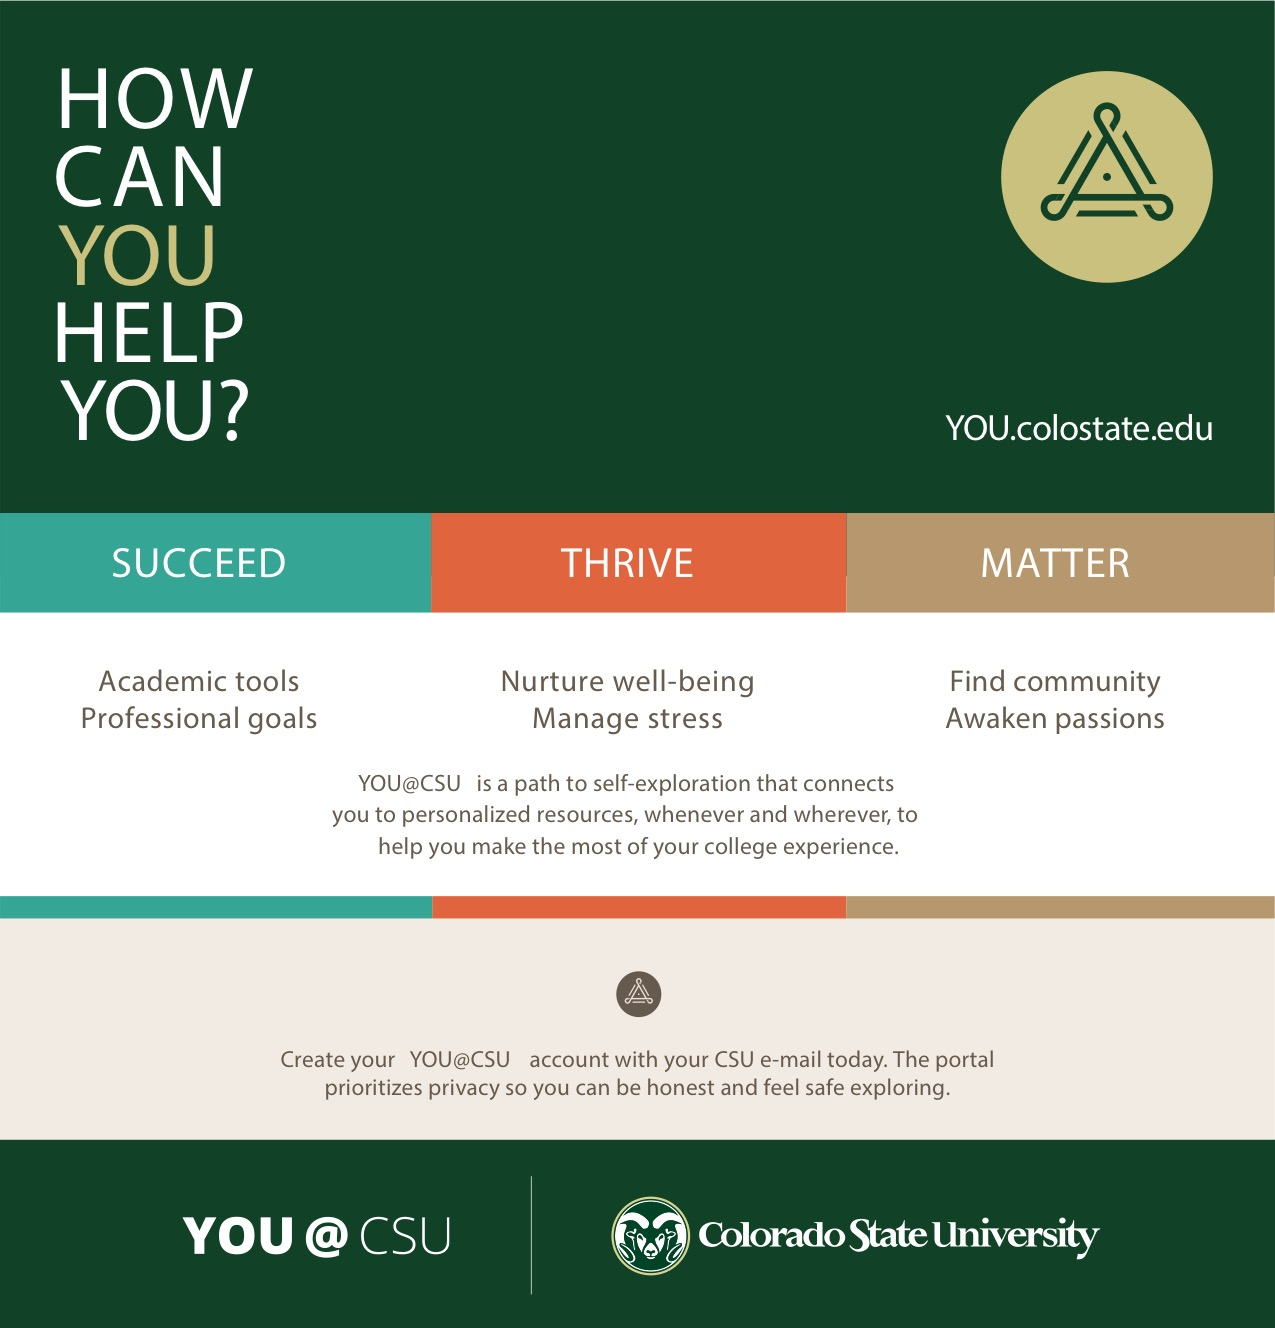 HOW CAN YOU HELP YOU? YOU.colostate.edu SUCCEED, THRIVE, MATTER - Academic tools Nurture well-being Find community Professional goals Manage stress Awaken passions YOU@CSU is a path to self-exploration that connects you to personalized resources, whenever and wherever, to help you make the most of your college experience. Create your YOU@CSU account with your CSU e-mail today. The portal prioritizes privacy so you can be honest and feel safe exploring.